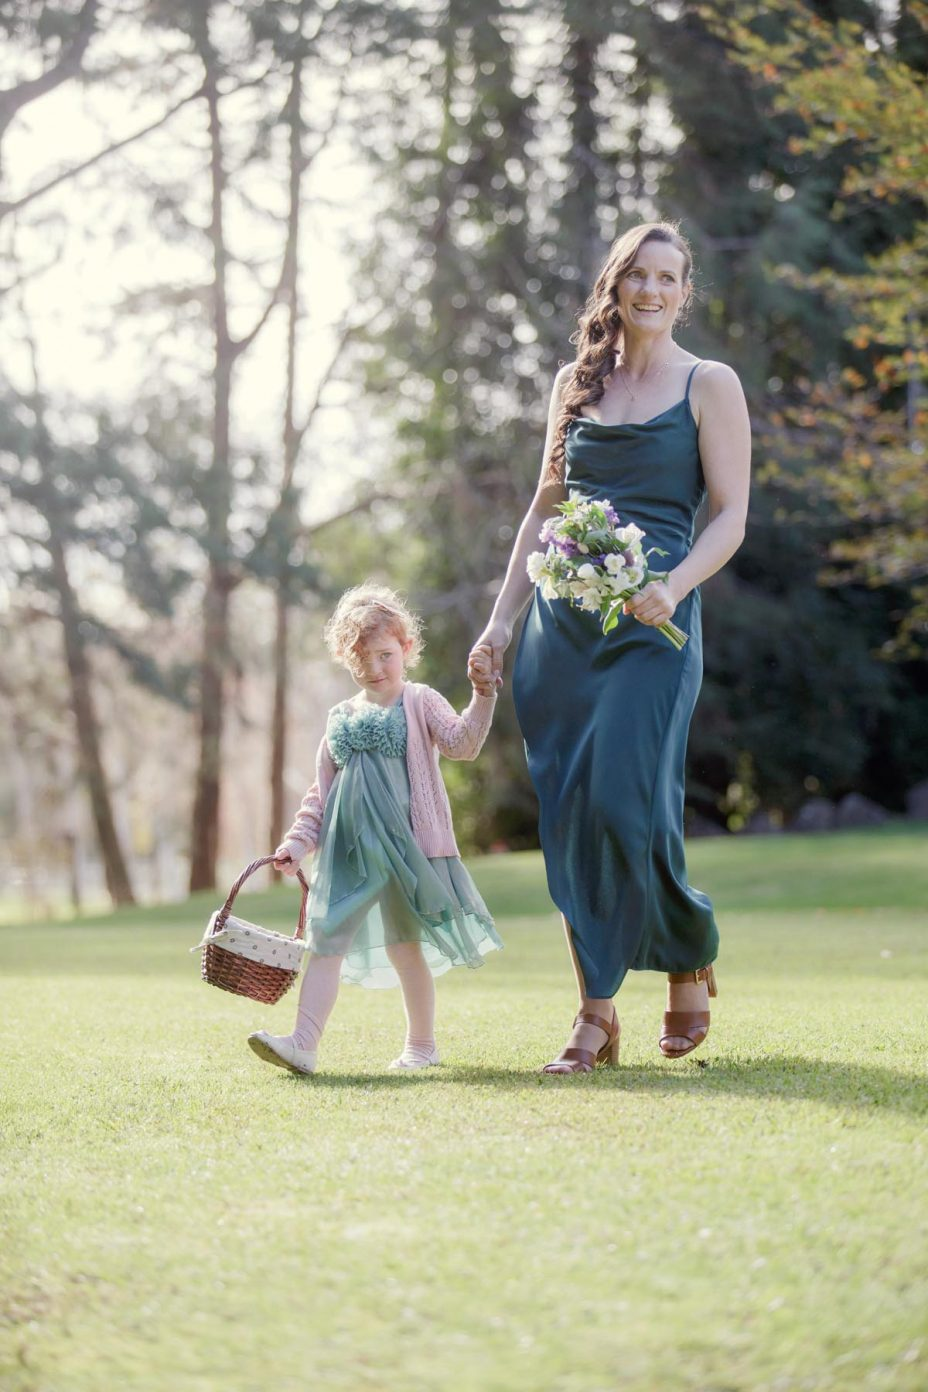 Bridesmaid and flower girl with flower basket walk to the wedding ceremony